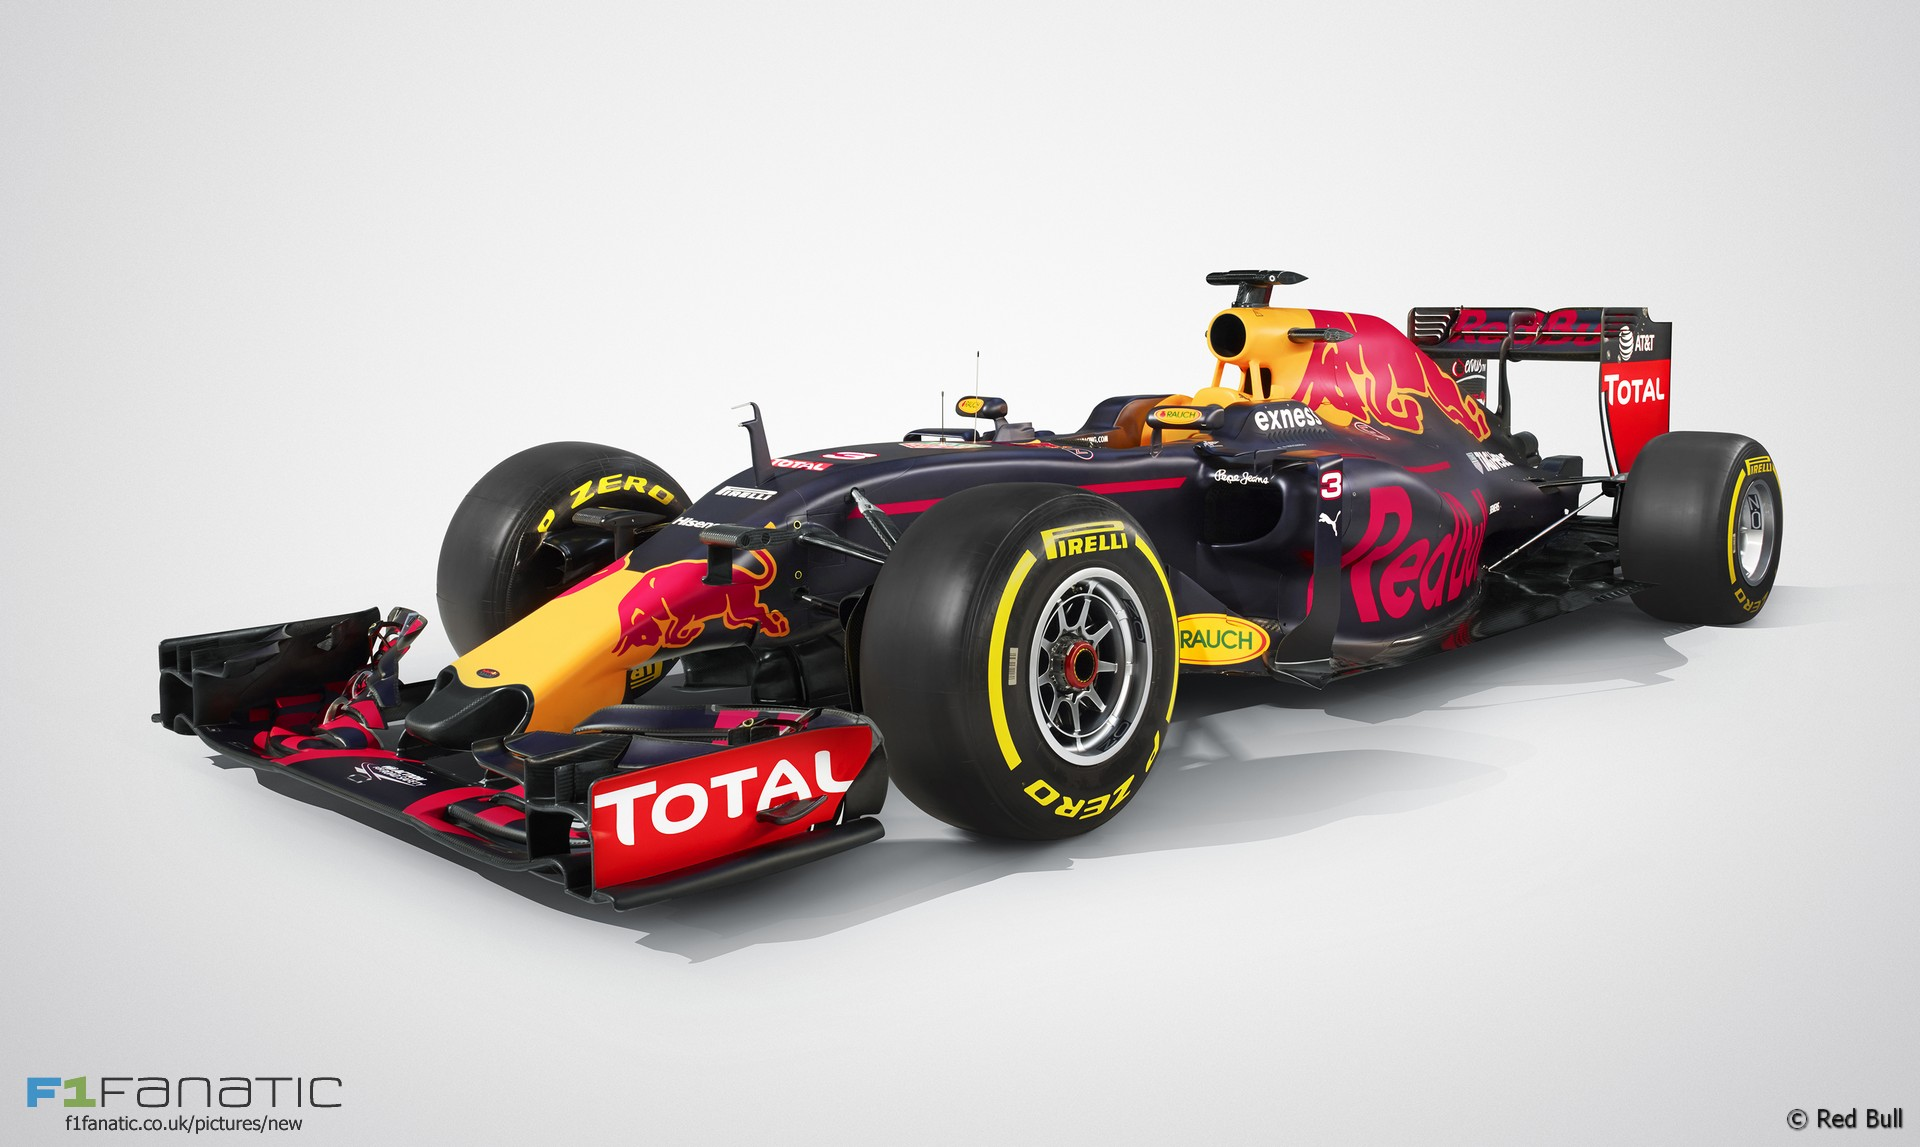 aston martin x red bull with Red Bull Rb12 First Pictures Revealed on Lamborghini Aventador Gets Full Carbon likewise Ferrari Emblem Logo Vector besides Blog Entry 649 as well Neck 20designs 20of 20saree 20blouse further Ferrari 250gt Swb Lusso.